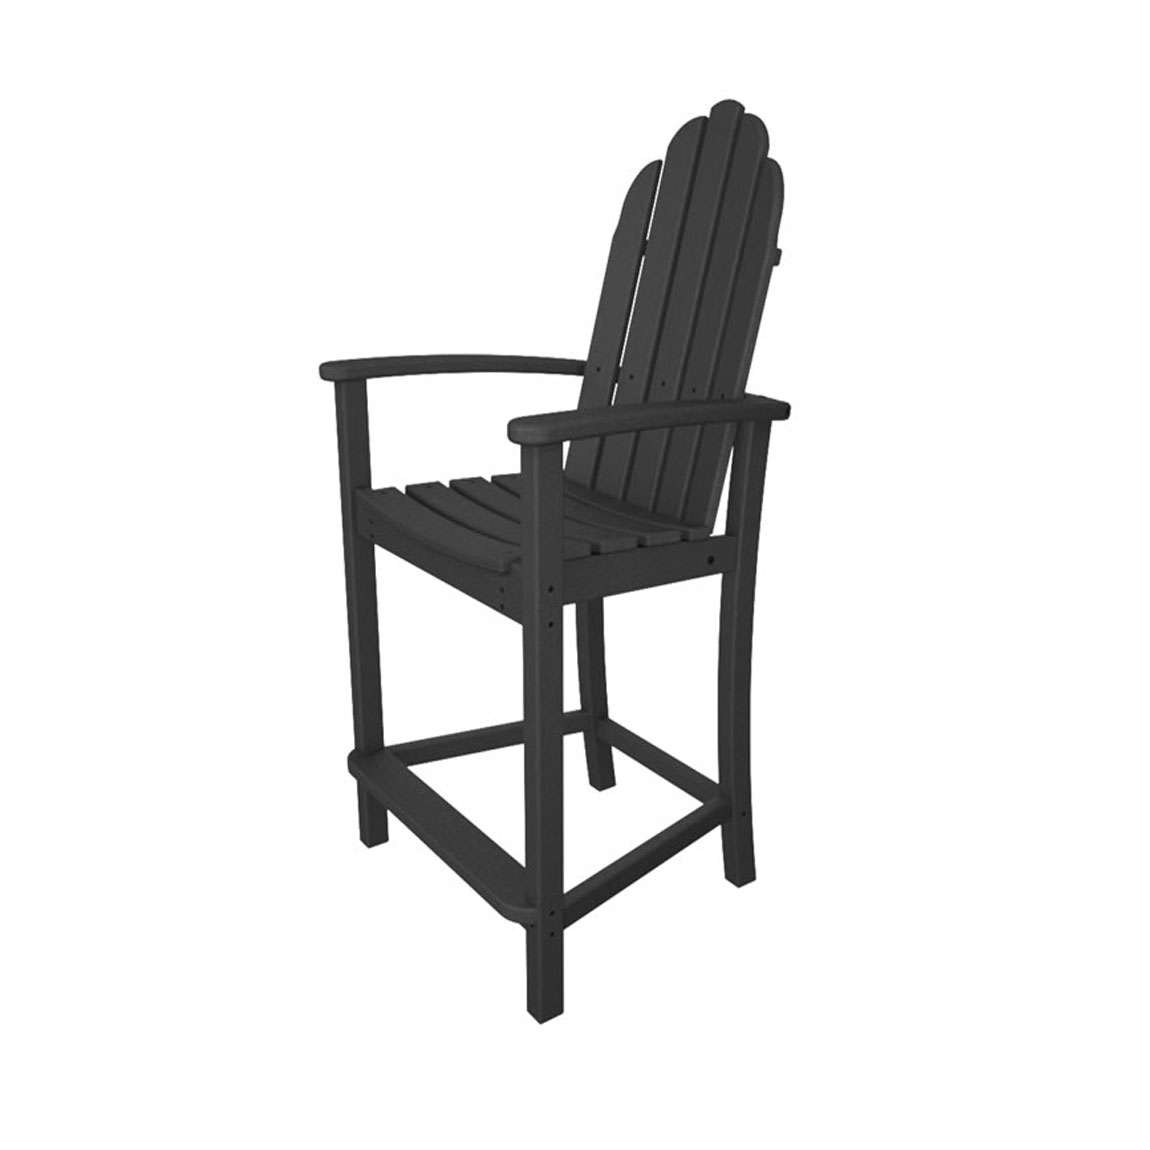 Recycled Plastic Classic Adirondack Counter Height Chair by Poly-Wood Adirondack